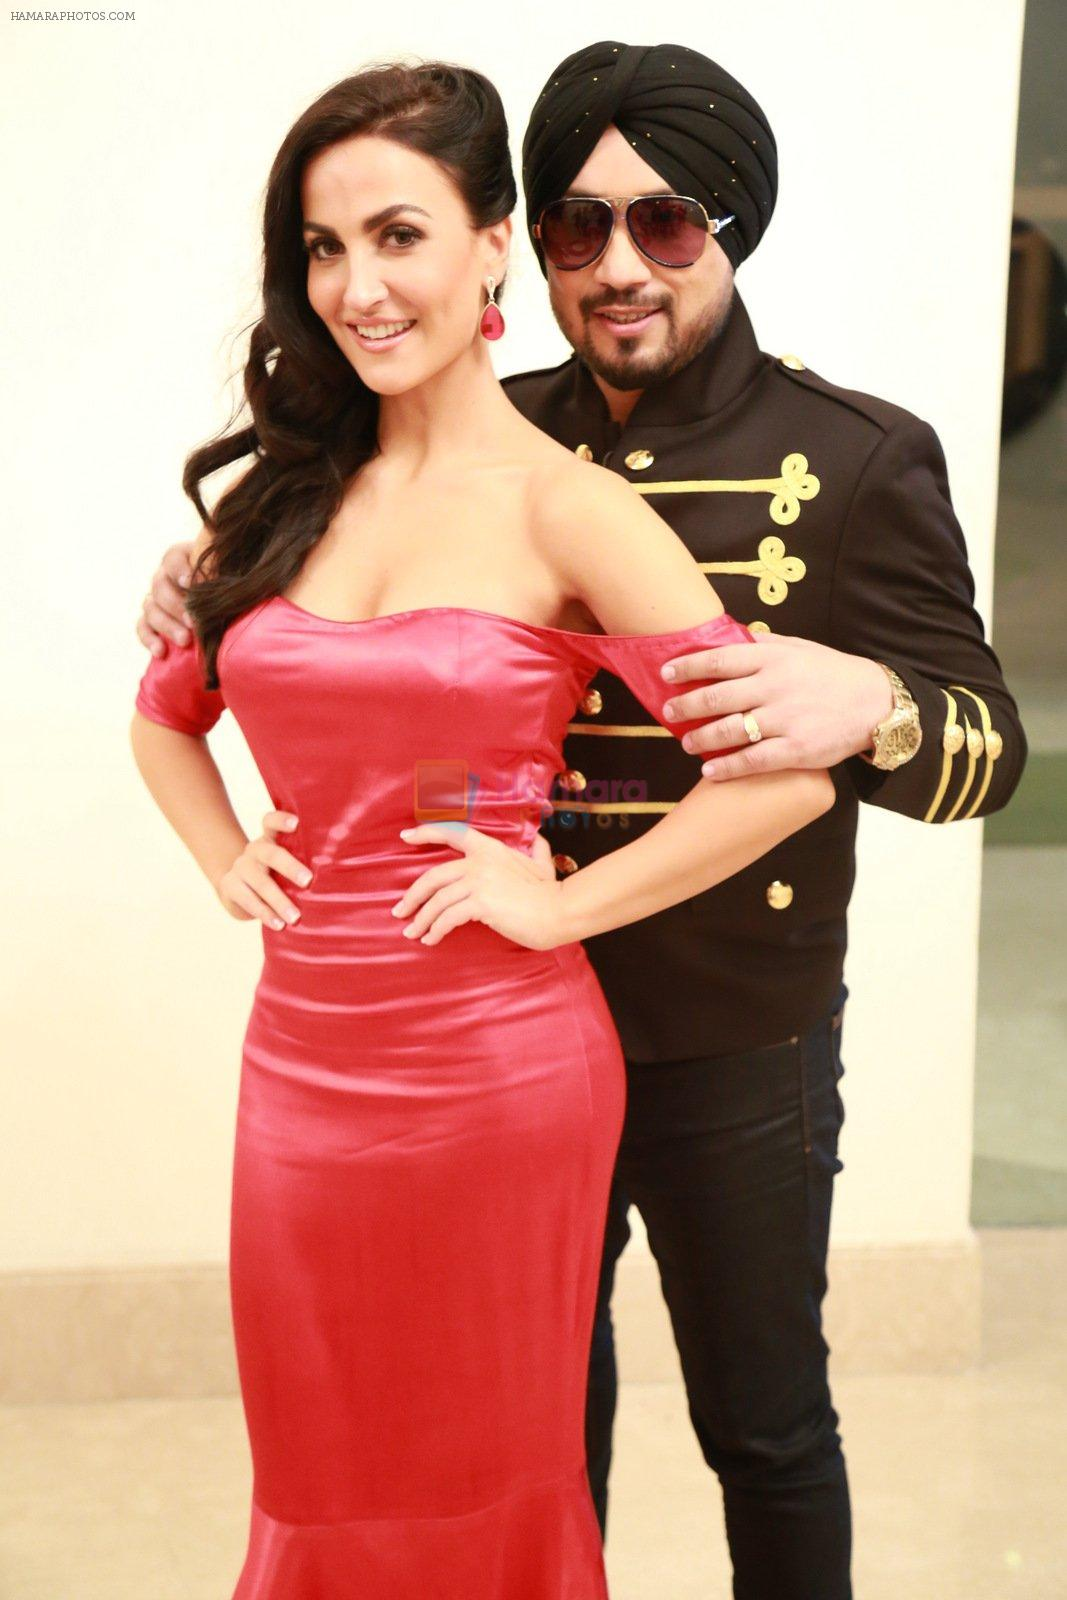 Dilbagh Singh & Elli avram in an Upcoming Track Urban Chhori on 30th Nov 2016